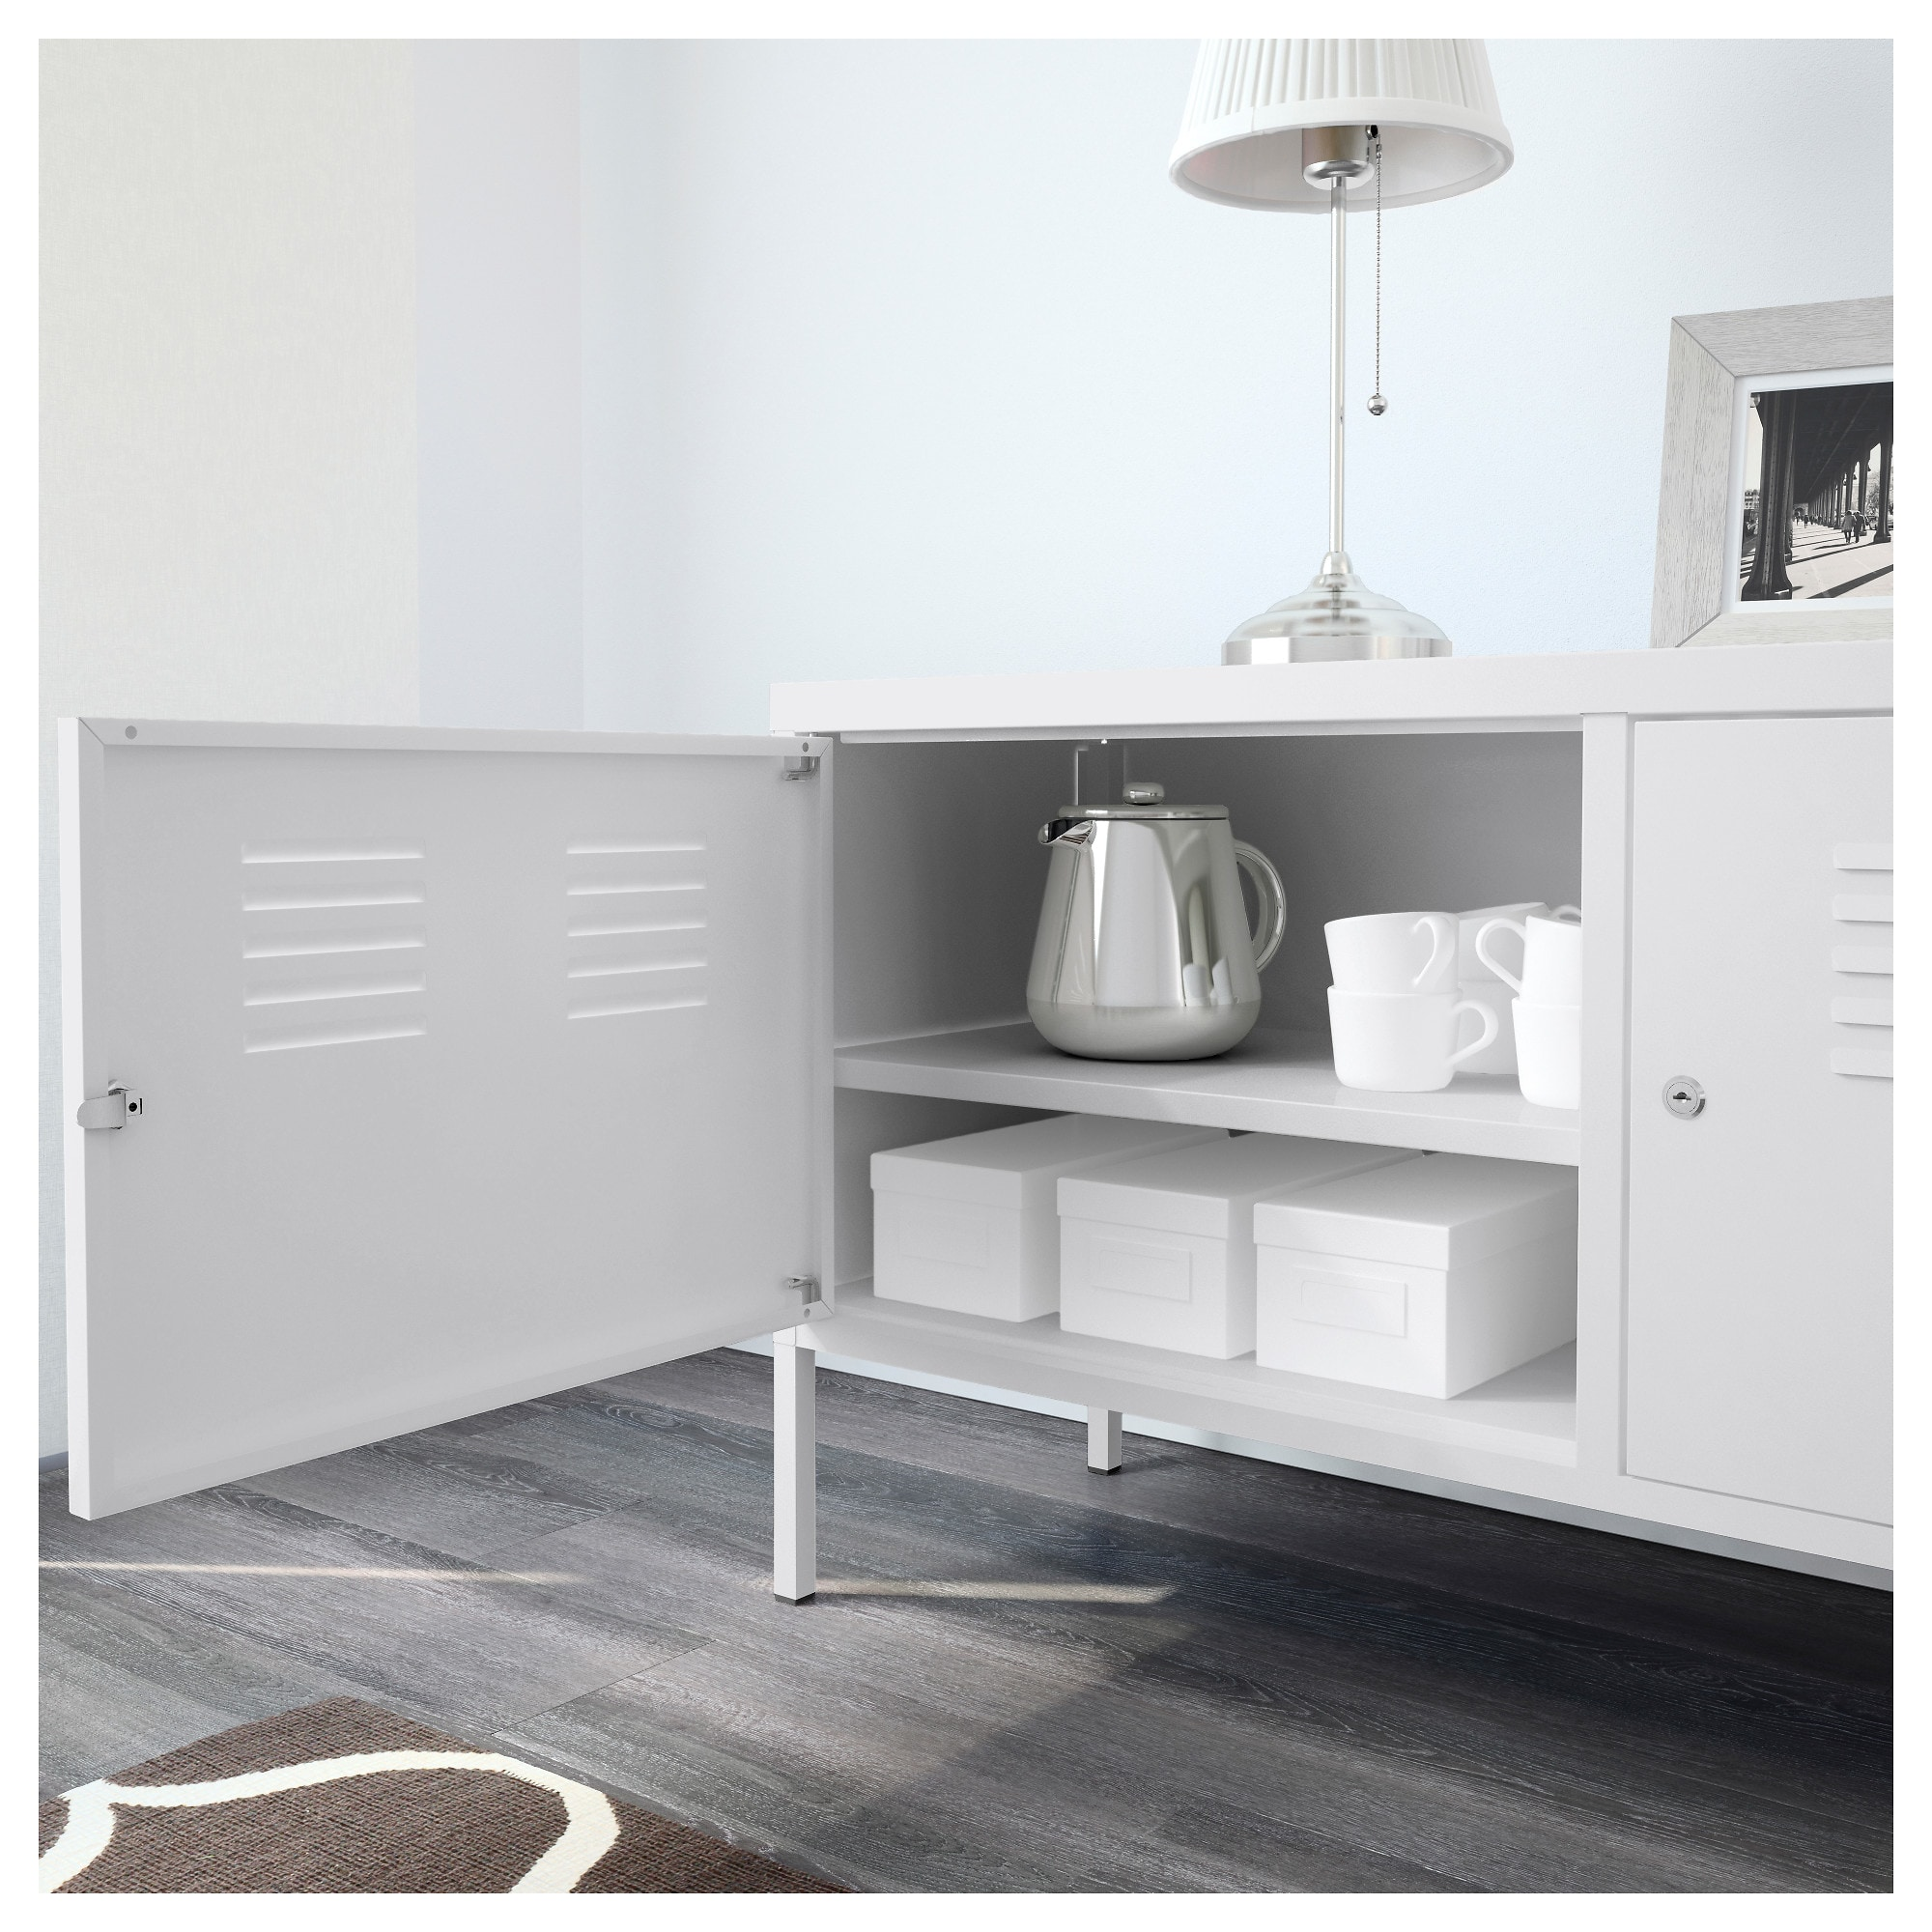 The Ikea Storage Piece We Spot Over And Again It S Under 100